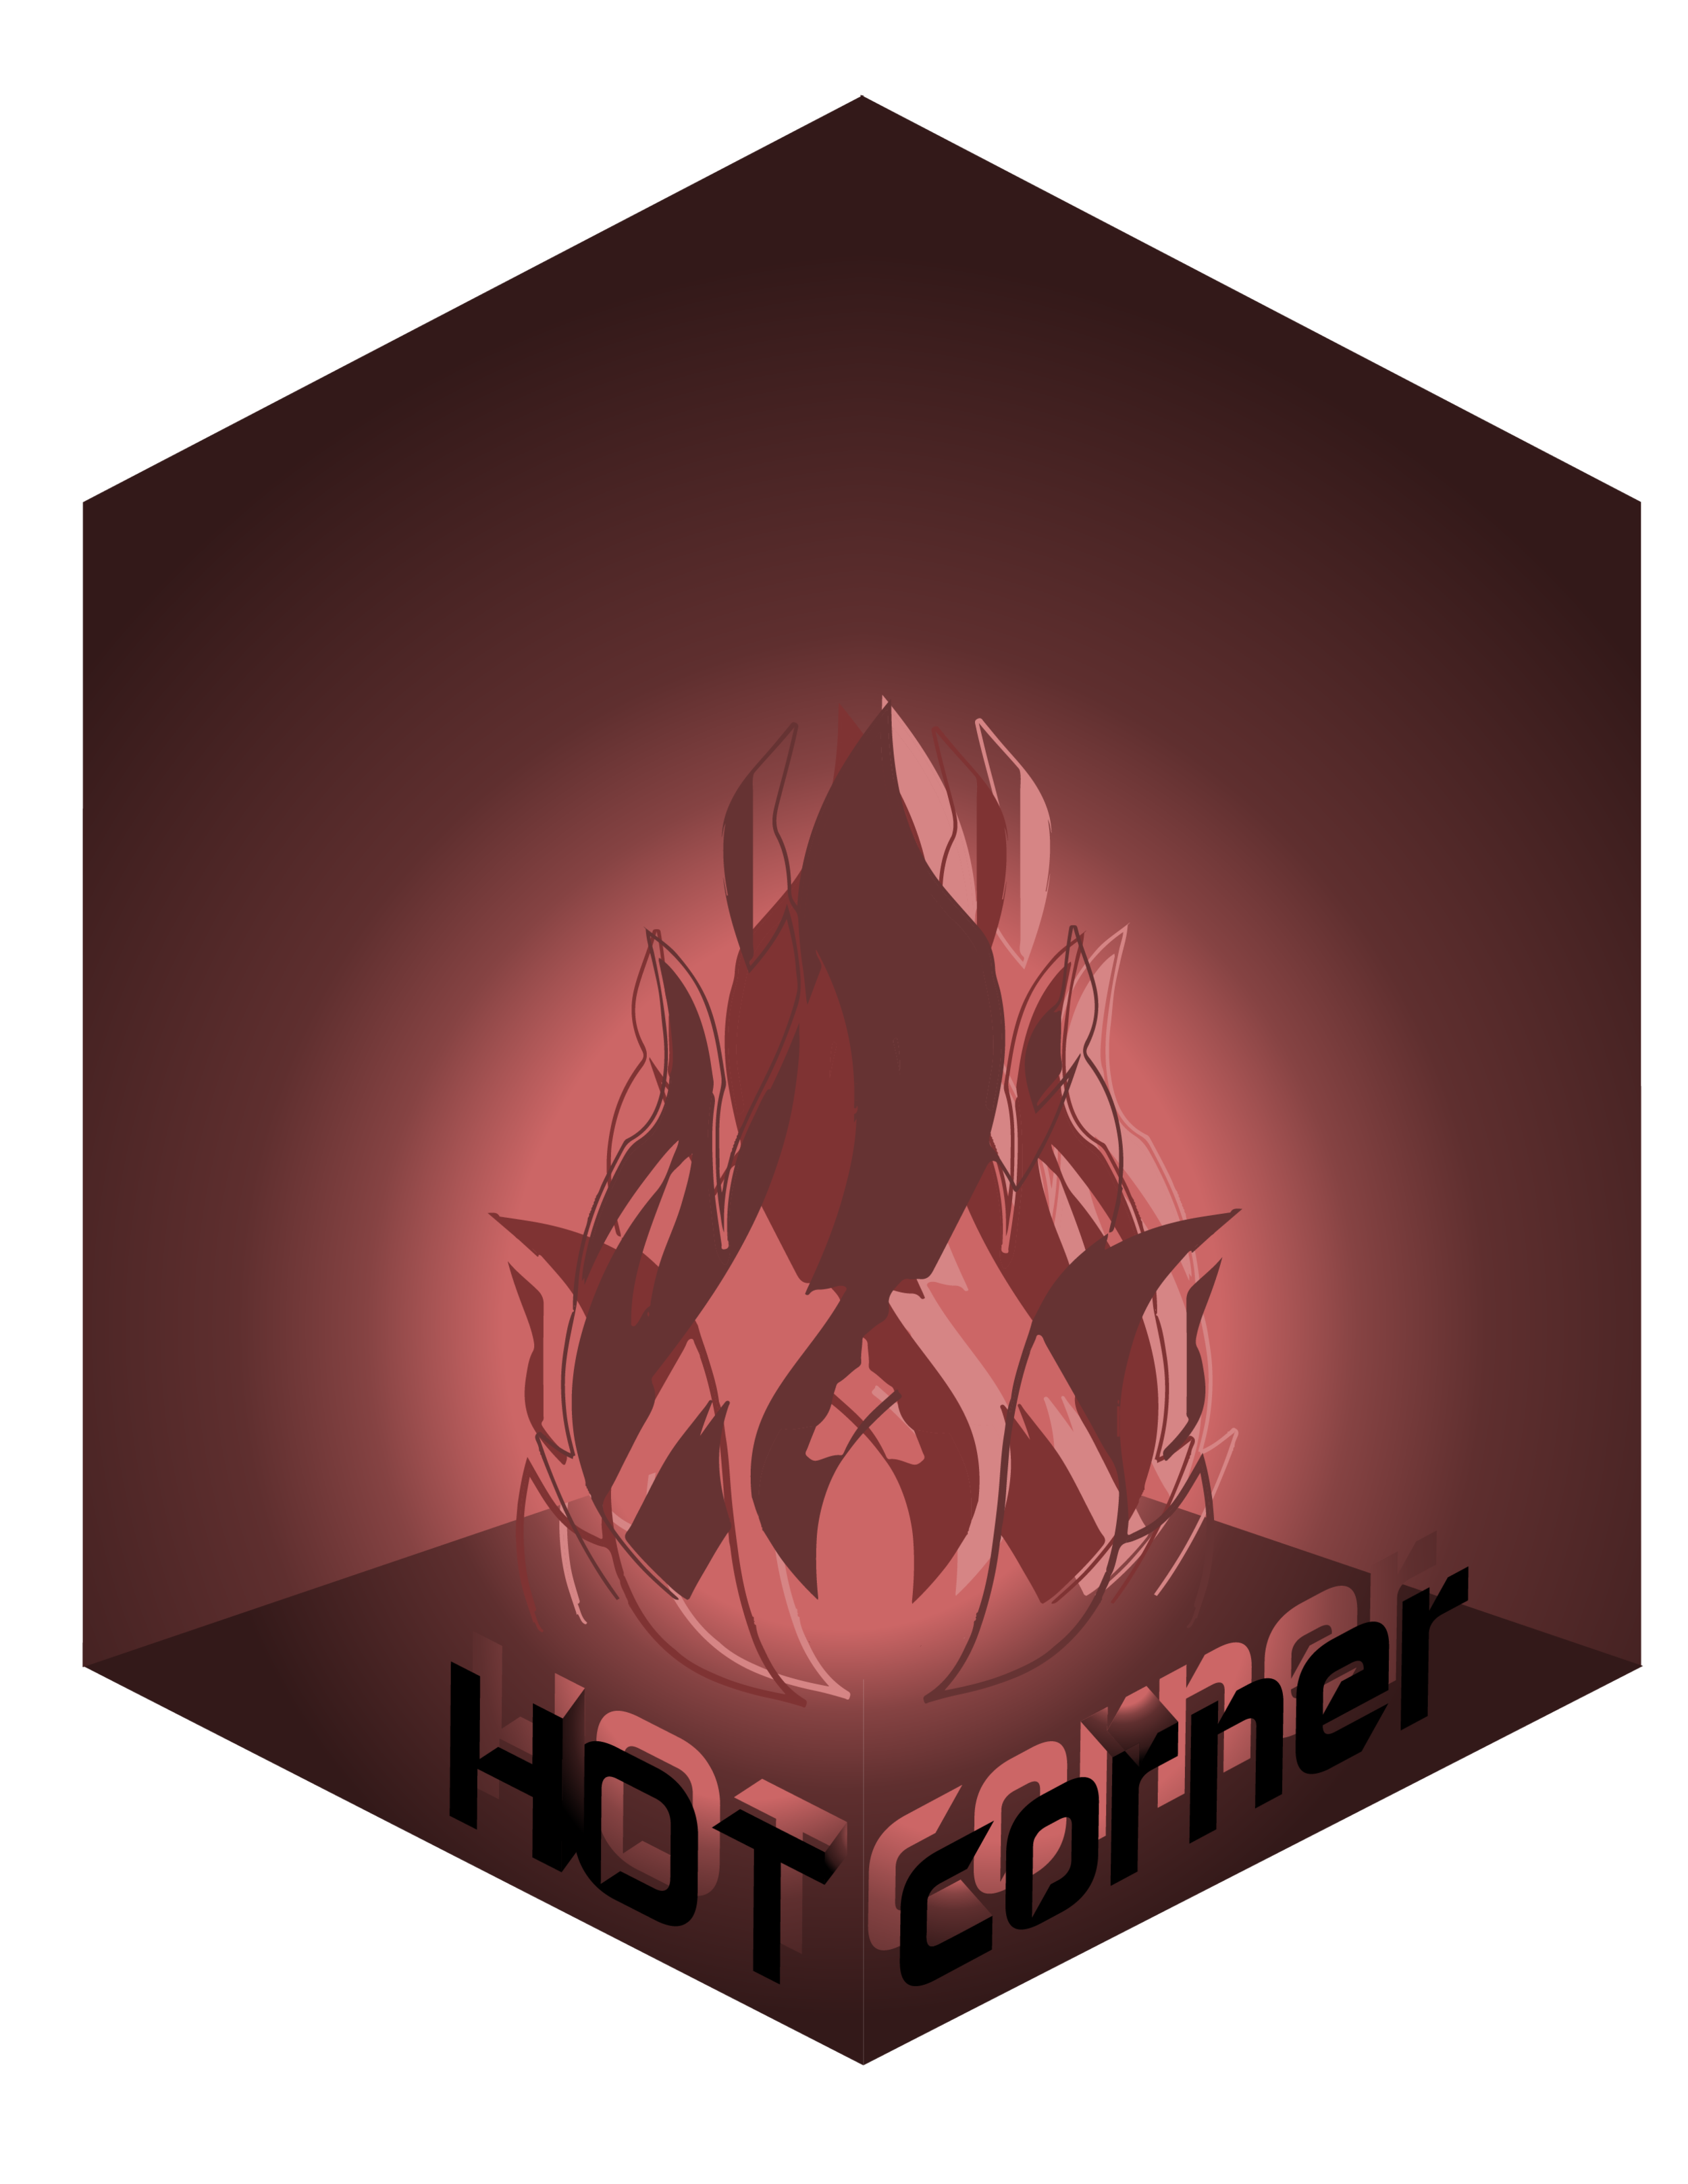 Hot Corner - 2nd season of The Hot Corner is back and the NFL is under scope. With the season over and marquee players bouncing around the league, hosts Chris and Sam look at the current status of the 2019 seasons with rankings and super bowl favorites.